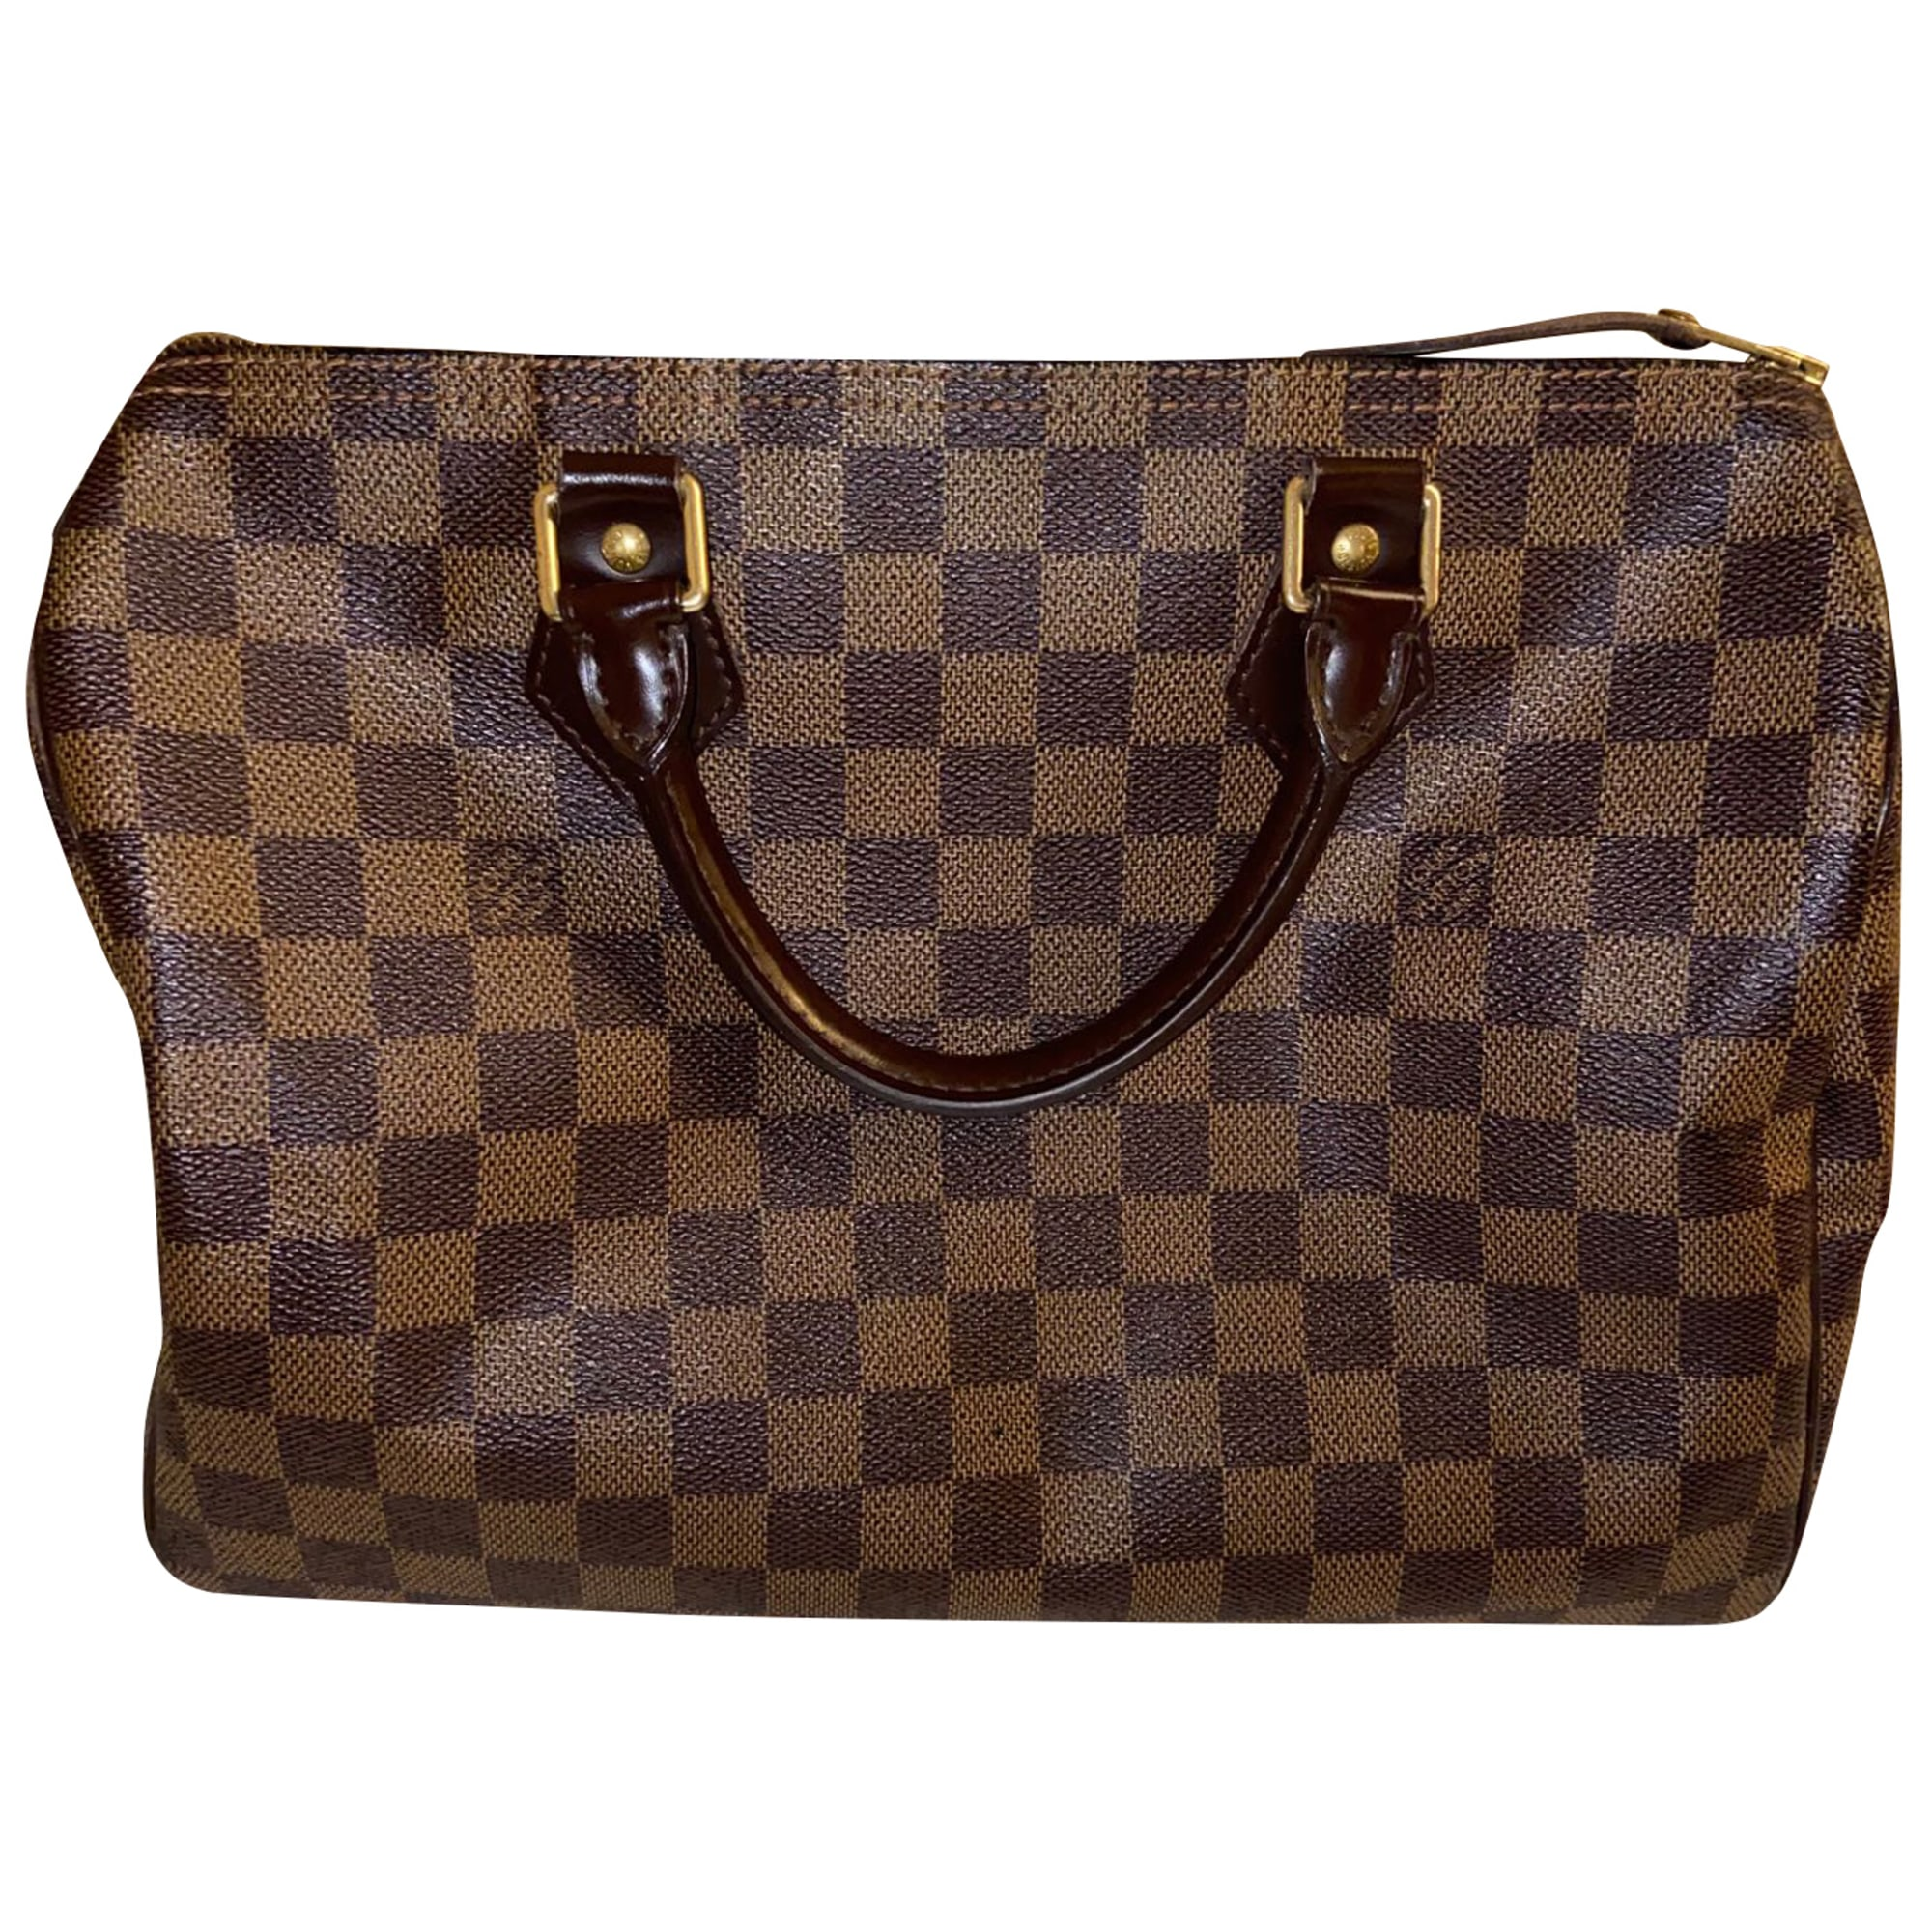 Sac à main en cuir LOUIS VUITTON Speedy Marron